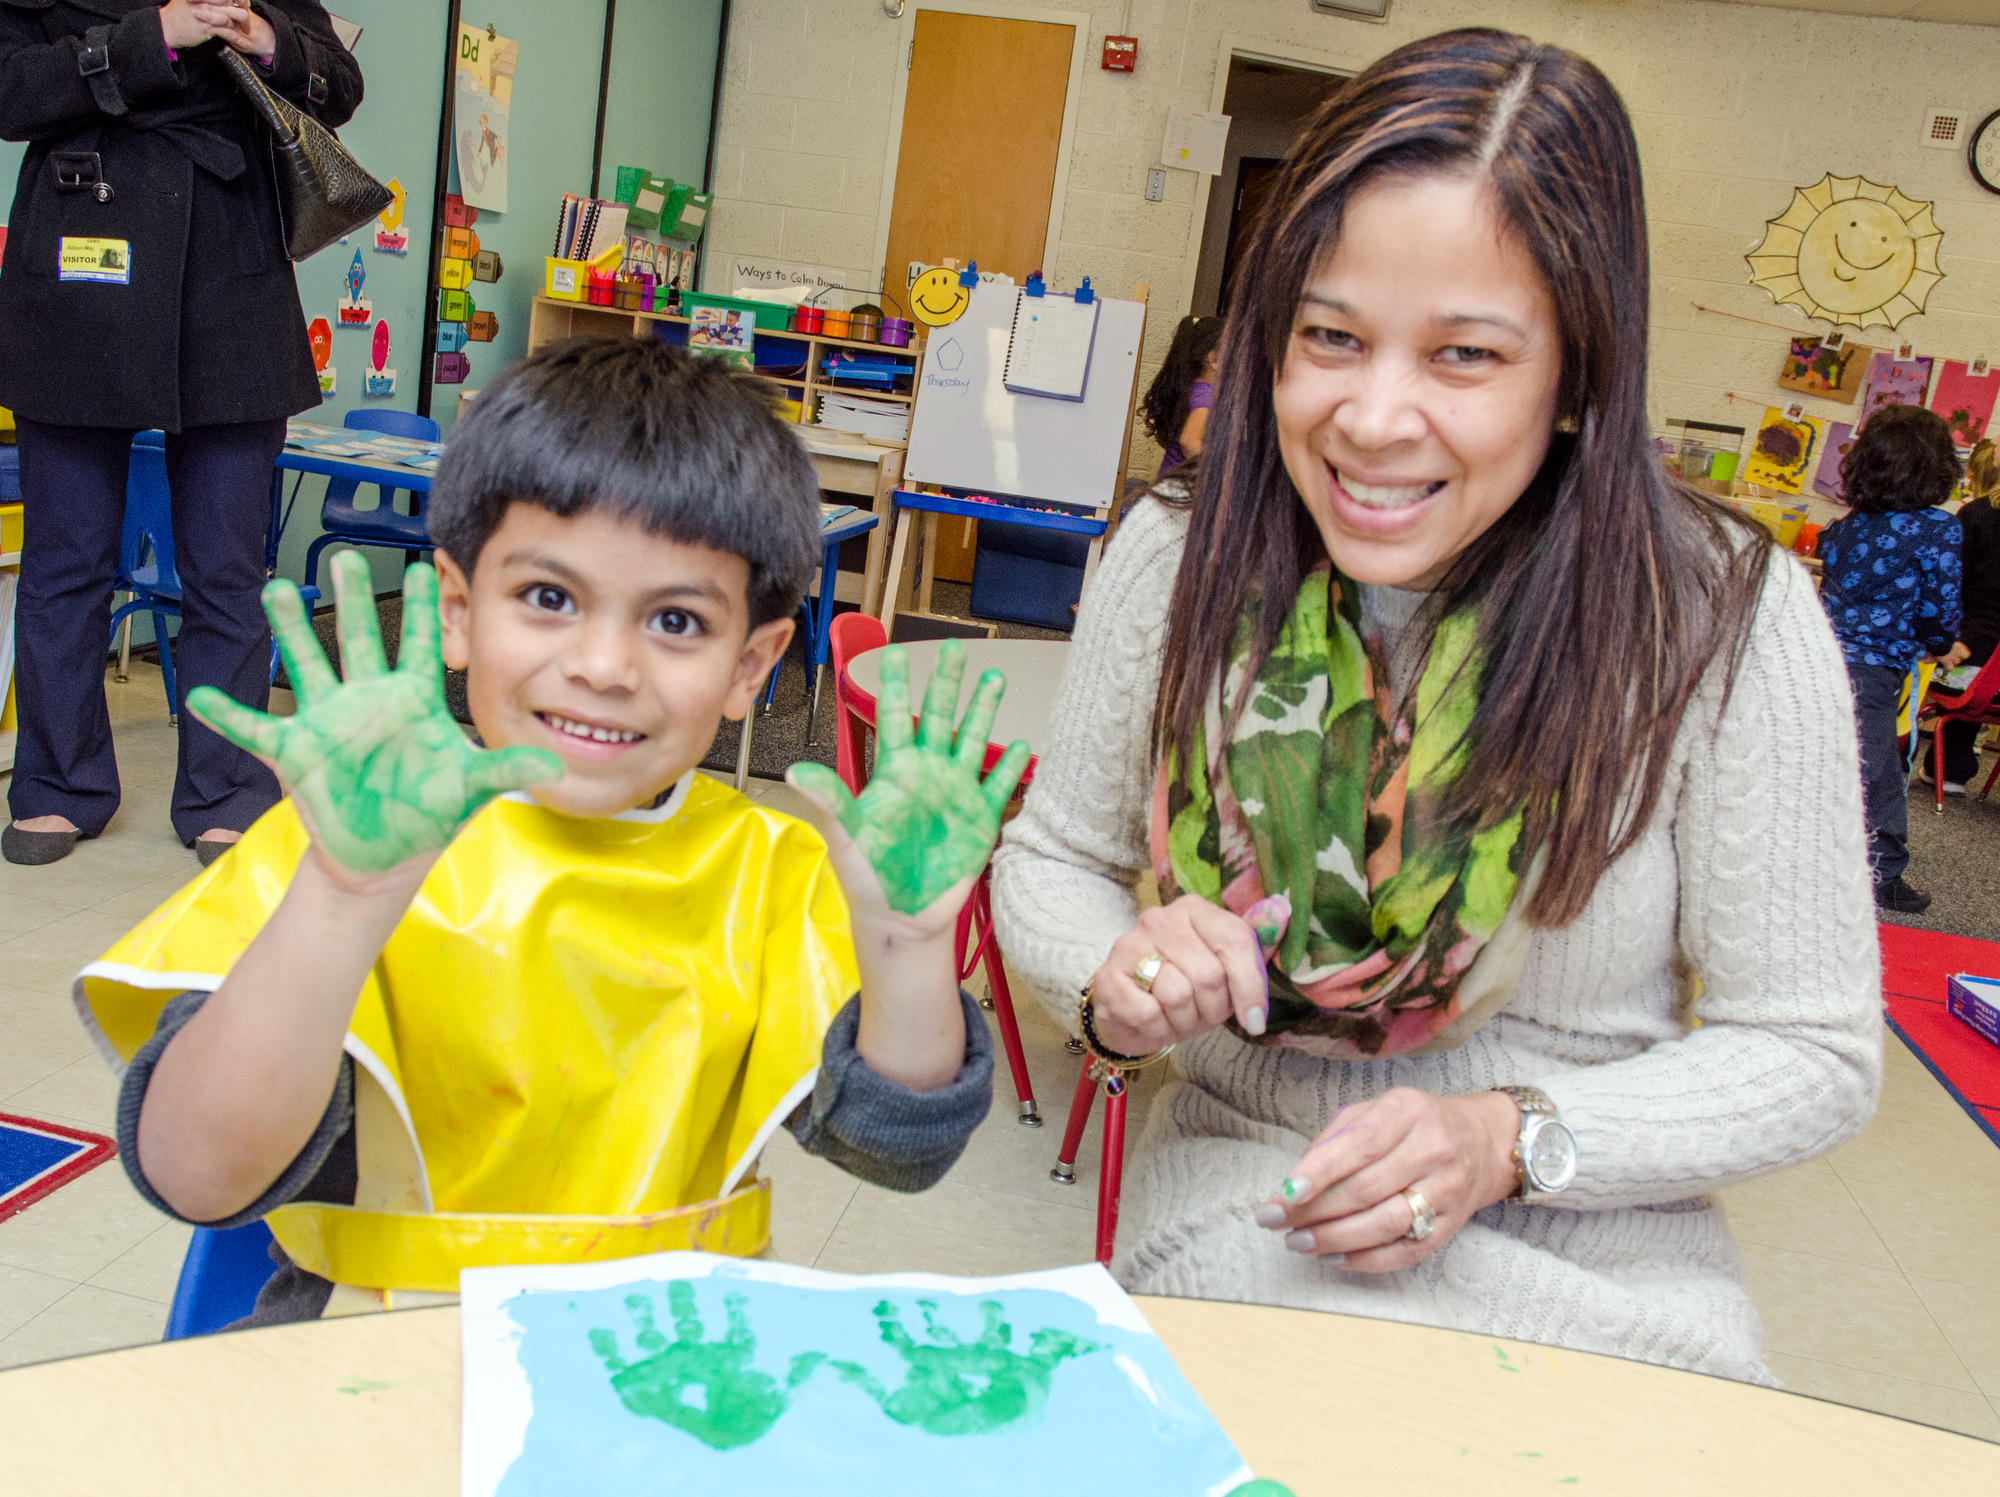 Child Hand Painting In Classroom